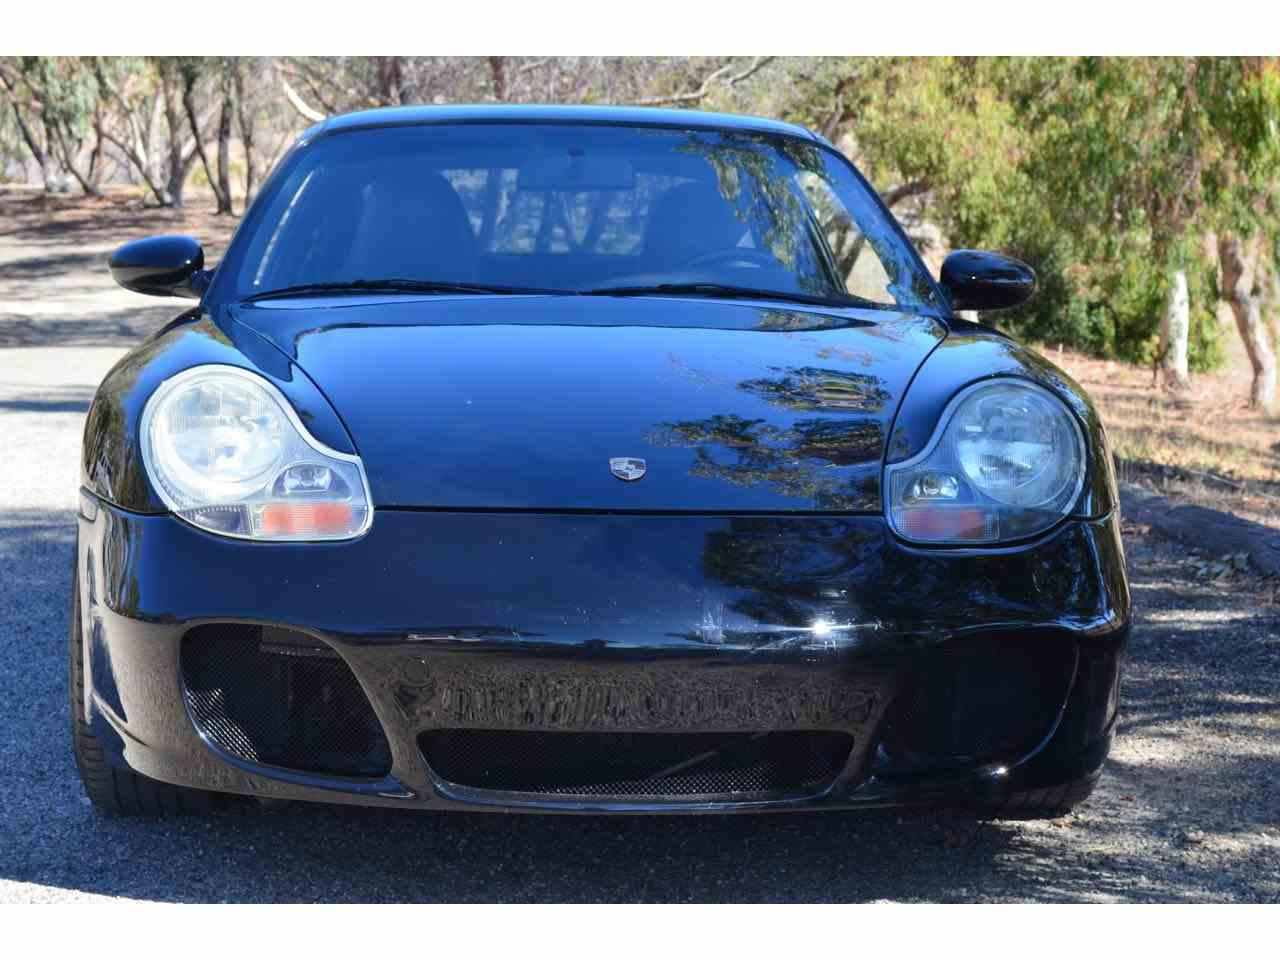 Large Picture of '99 911 Carrera located in California - $23,500.00 - JPFN